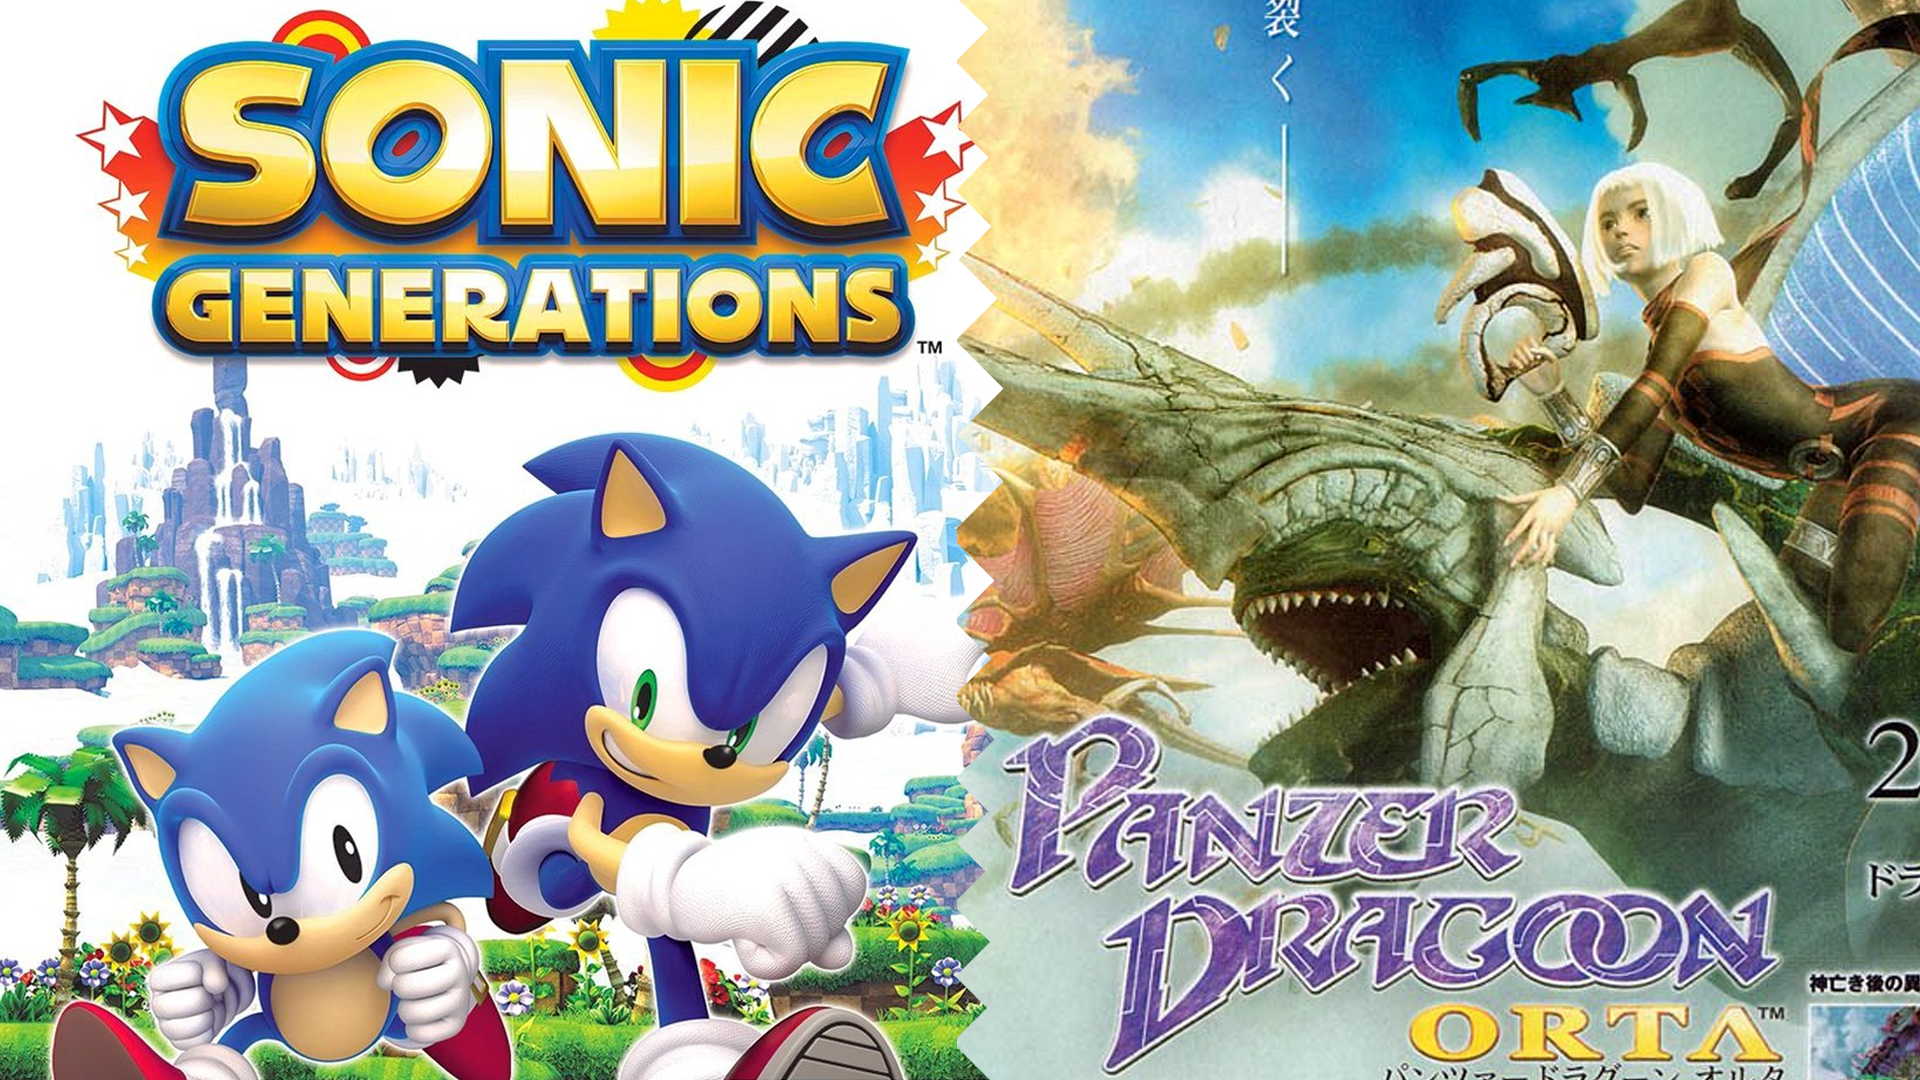 Sonic Generations And Panzer Dragoon Orta To Join Xbox One Backwards Compatibility Program Segabits 1 Source For Sega News